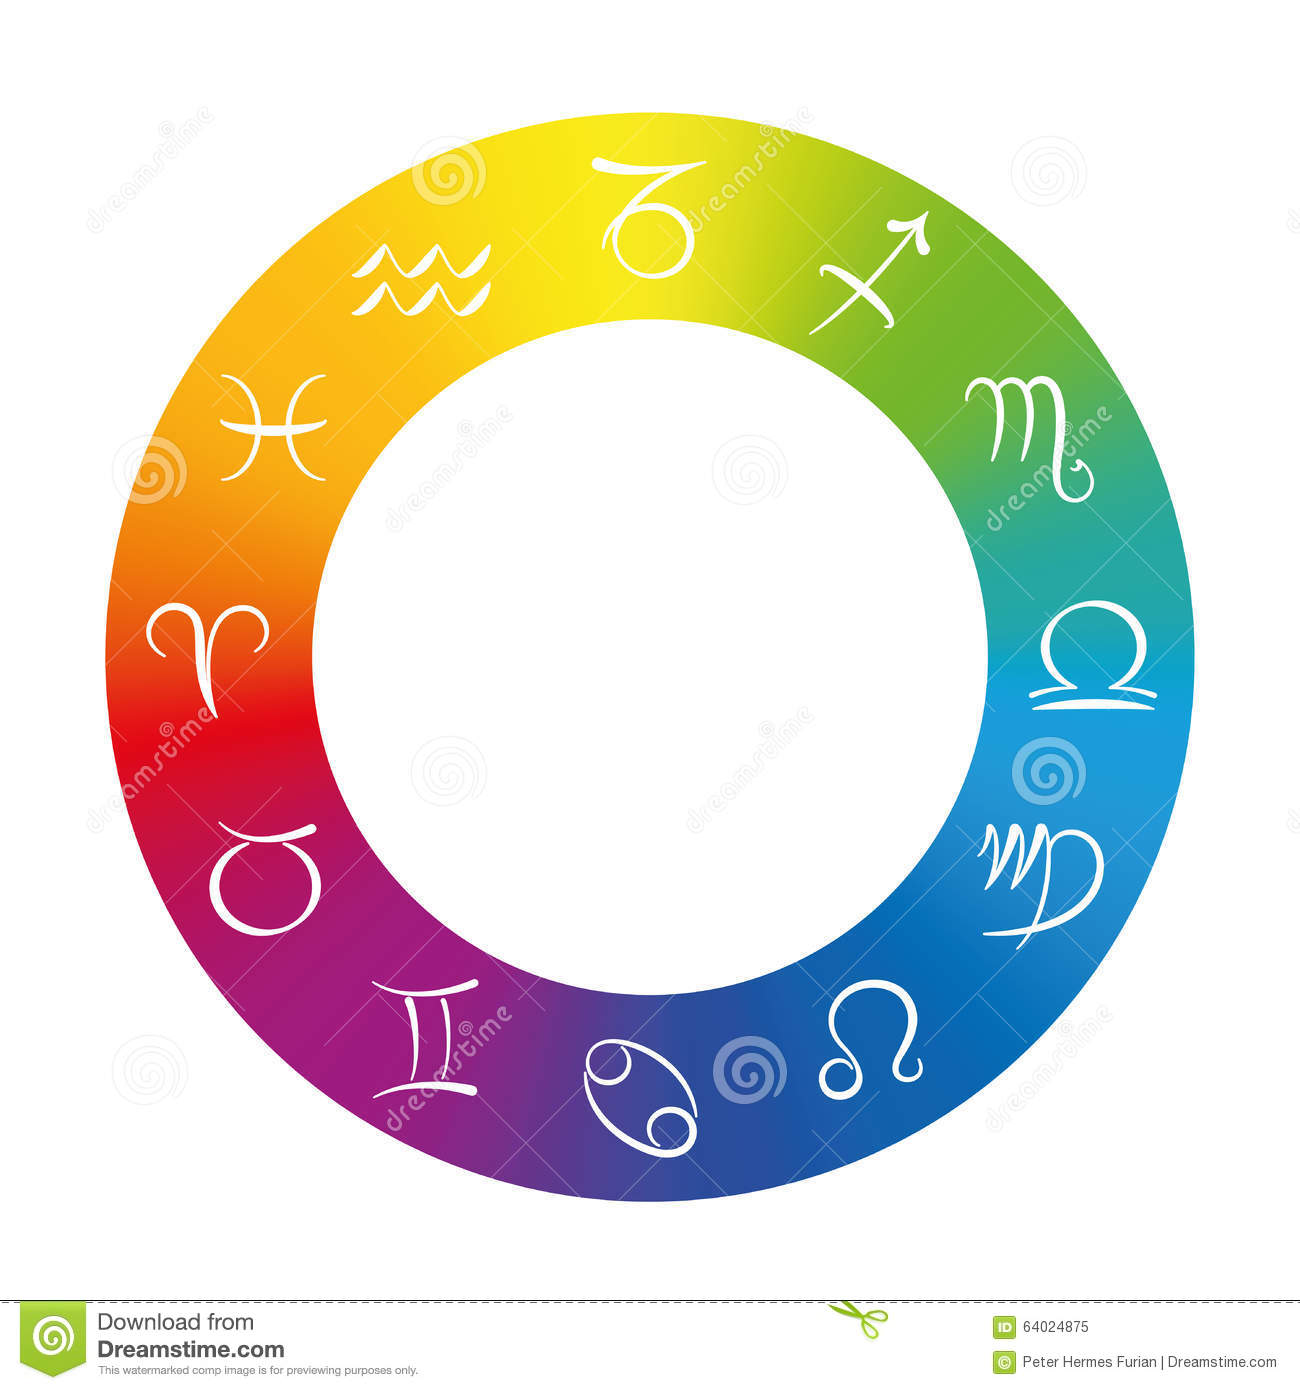 Color chart rainbow - Radix Astrology Symbols In Rainbow Colored Ring Royalty Free Stock Photo